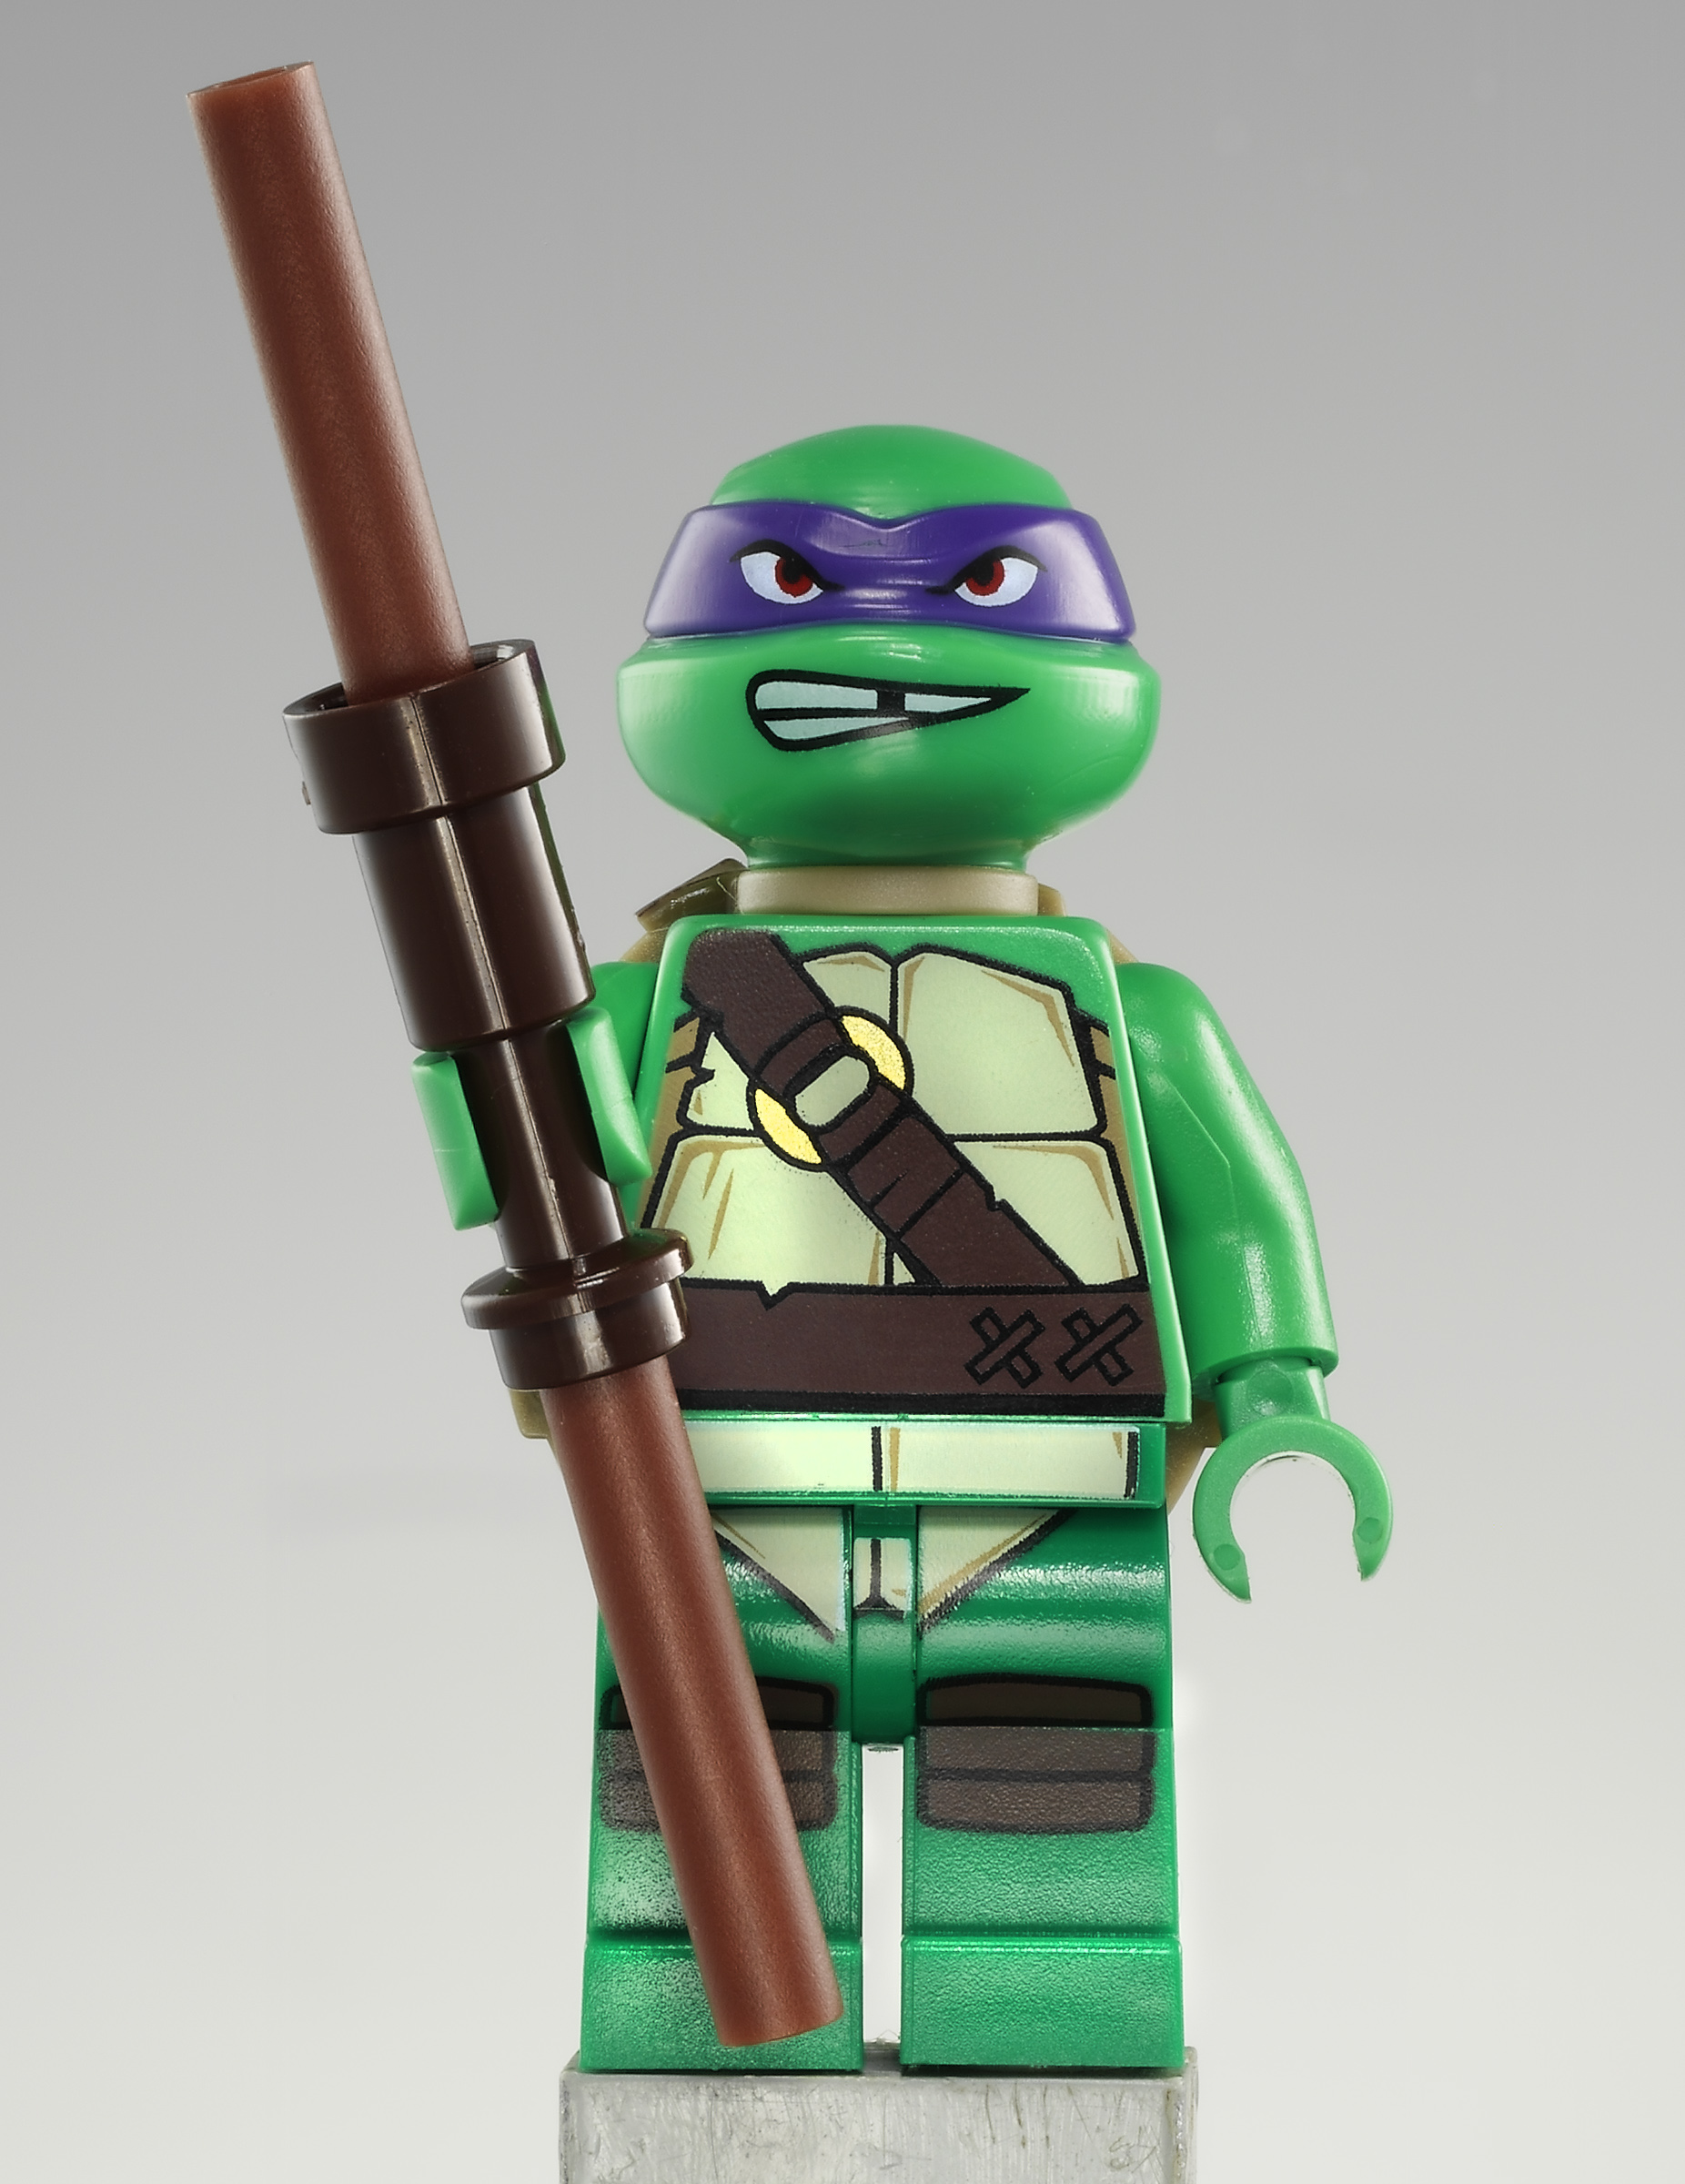 Tortues ninja fab joue aux lego - Tortues ninja donatello ...